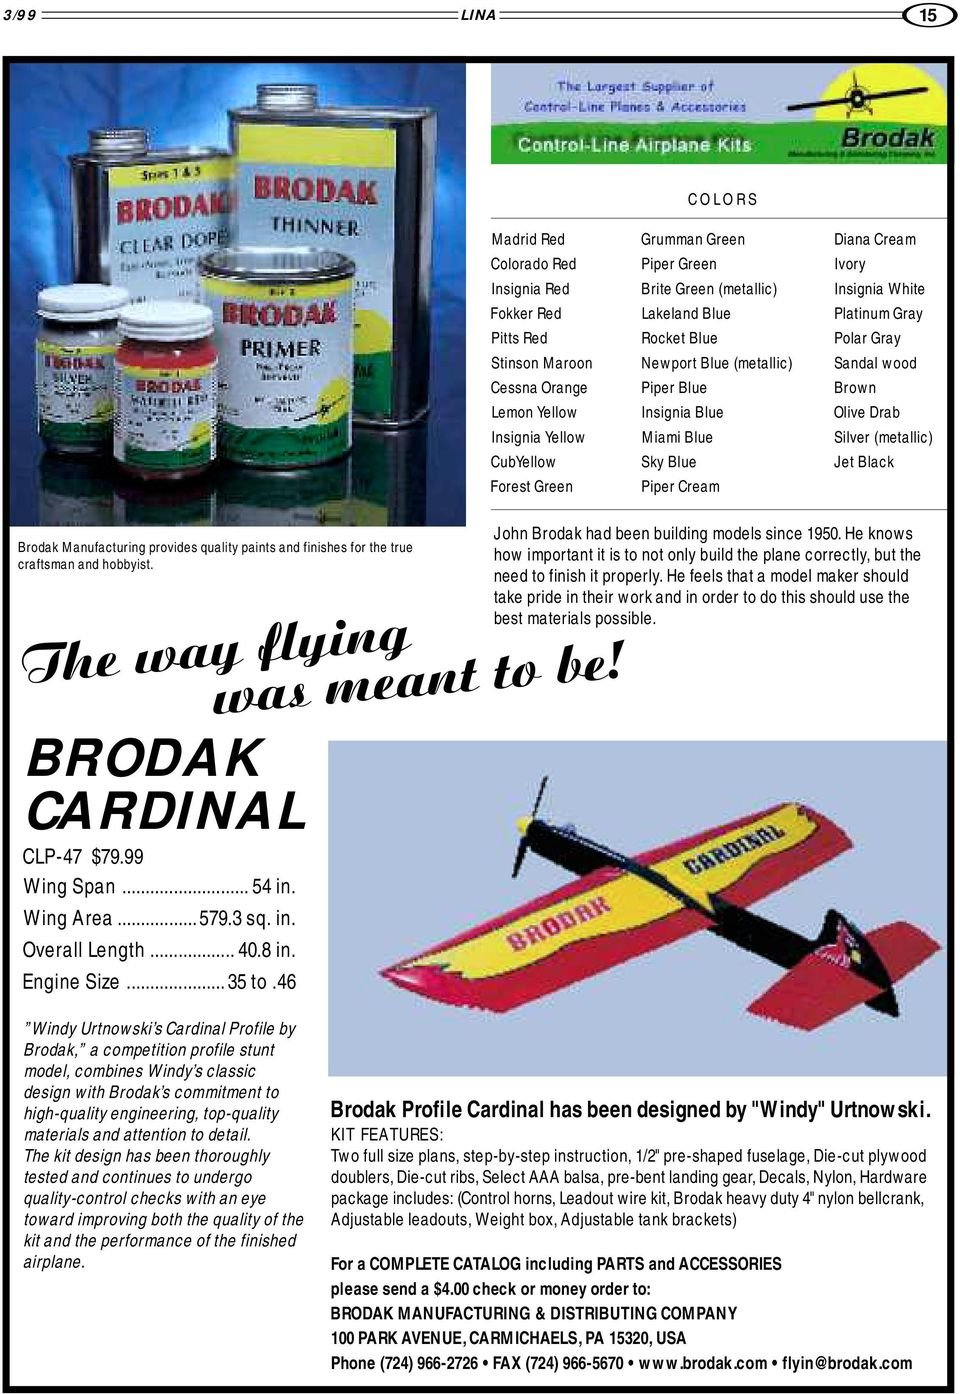 Drab Silver (metallic) Jet Black Brodak Manufacturing provides quality paints and finishes for the true craftsman and hobbyist. The way flying was meant to be! BRODAK CARDINAL CLP-47 $79.99 Wing Span.